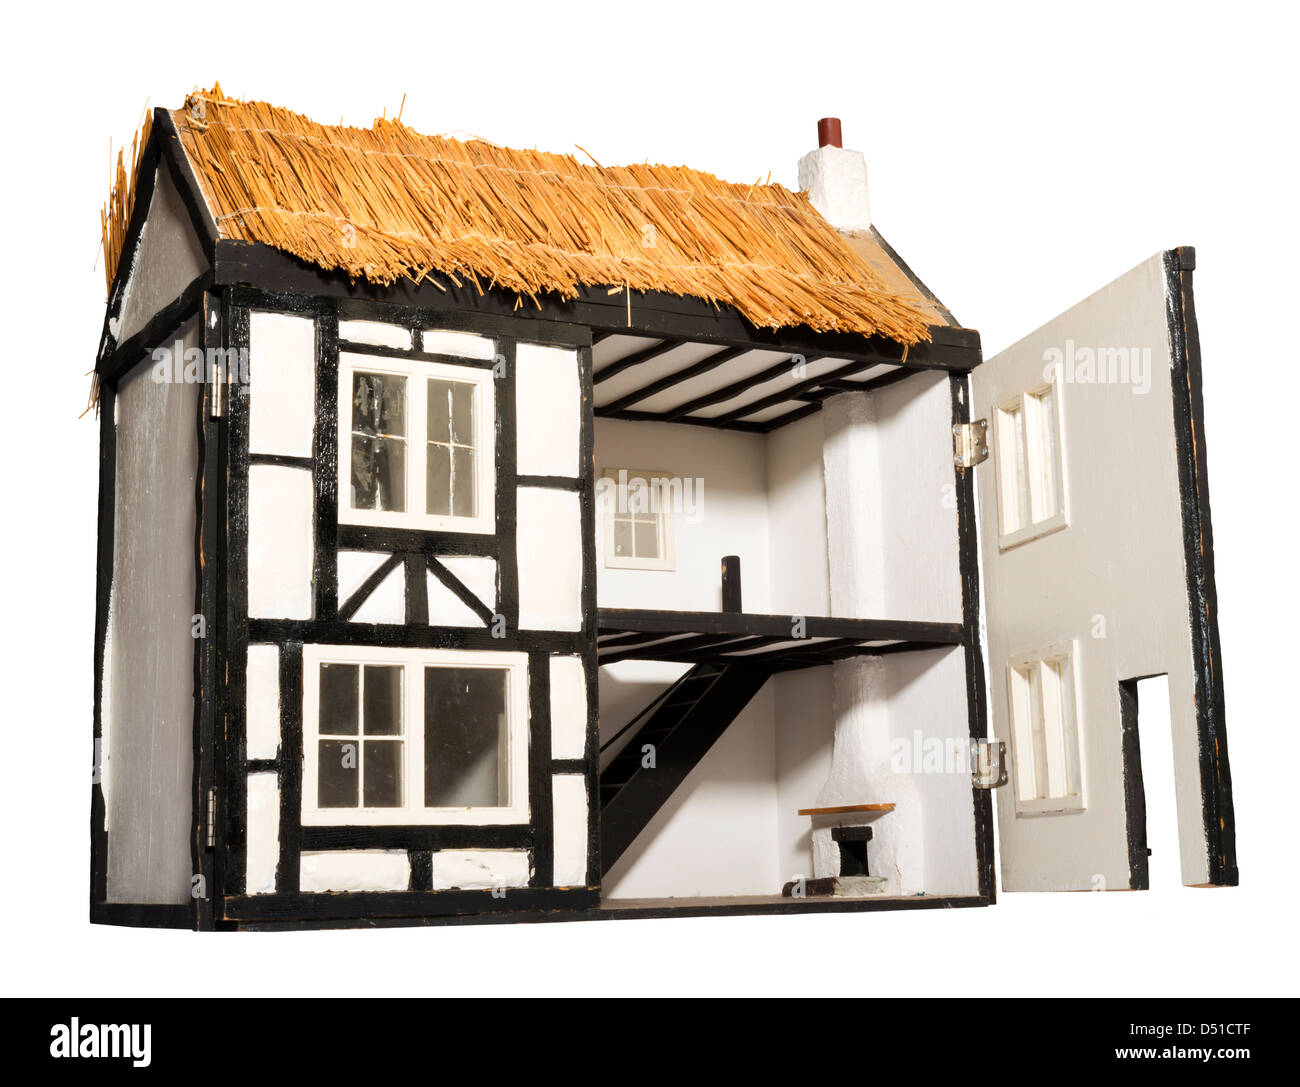 Dolls House Thatched Roof Material 12 300 About Roof